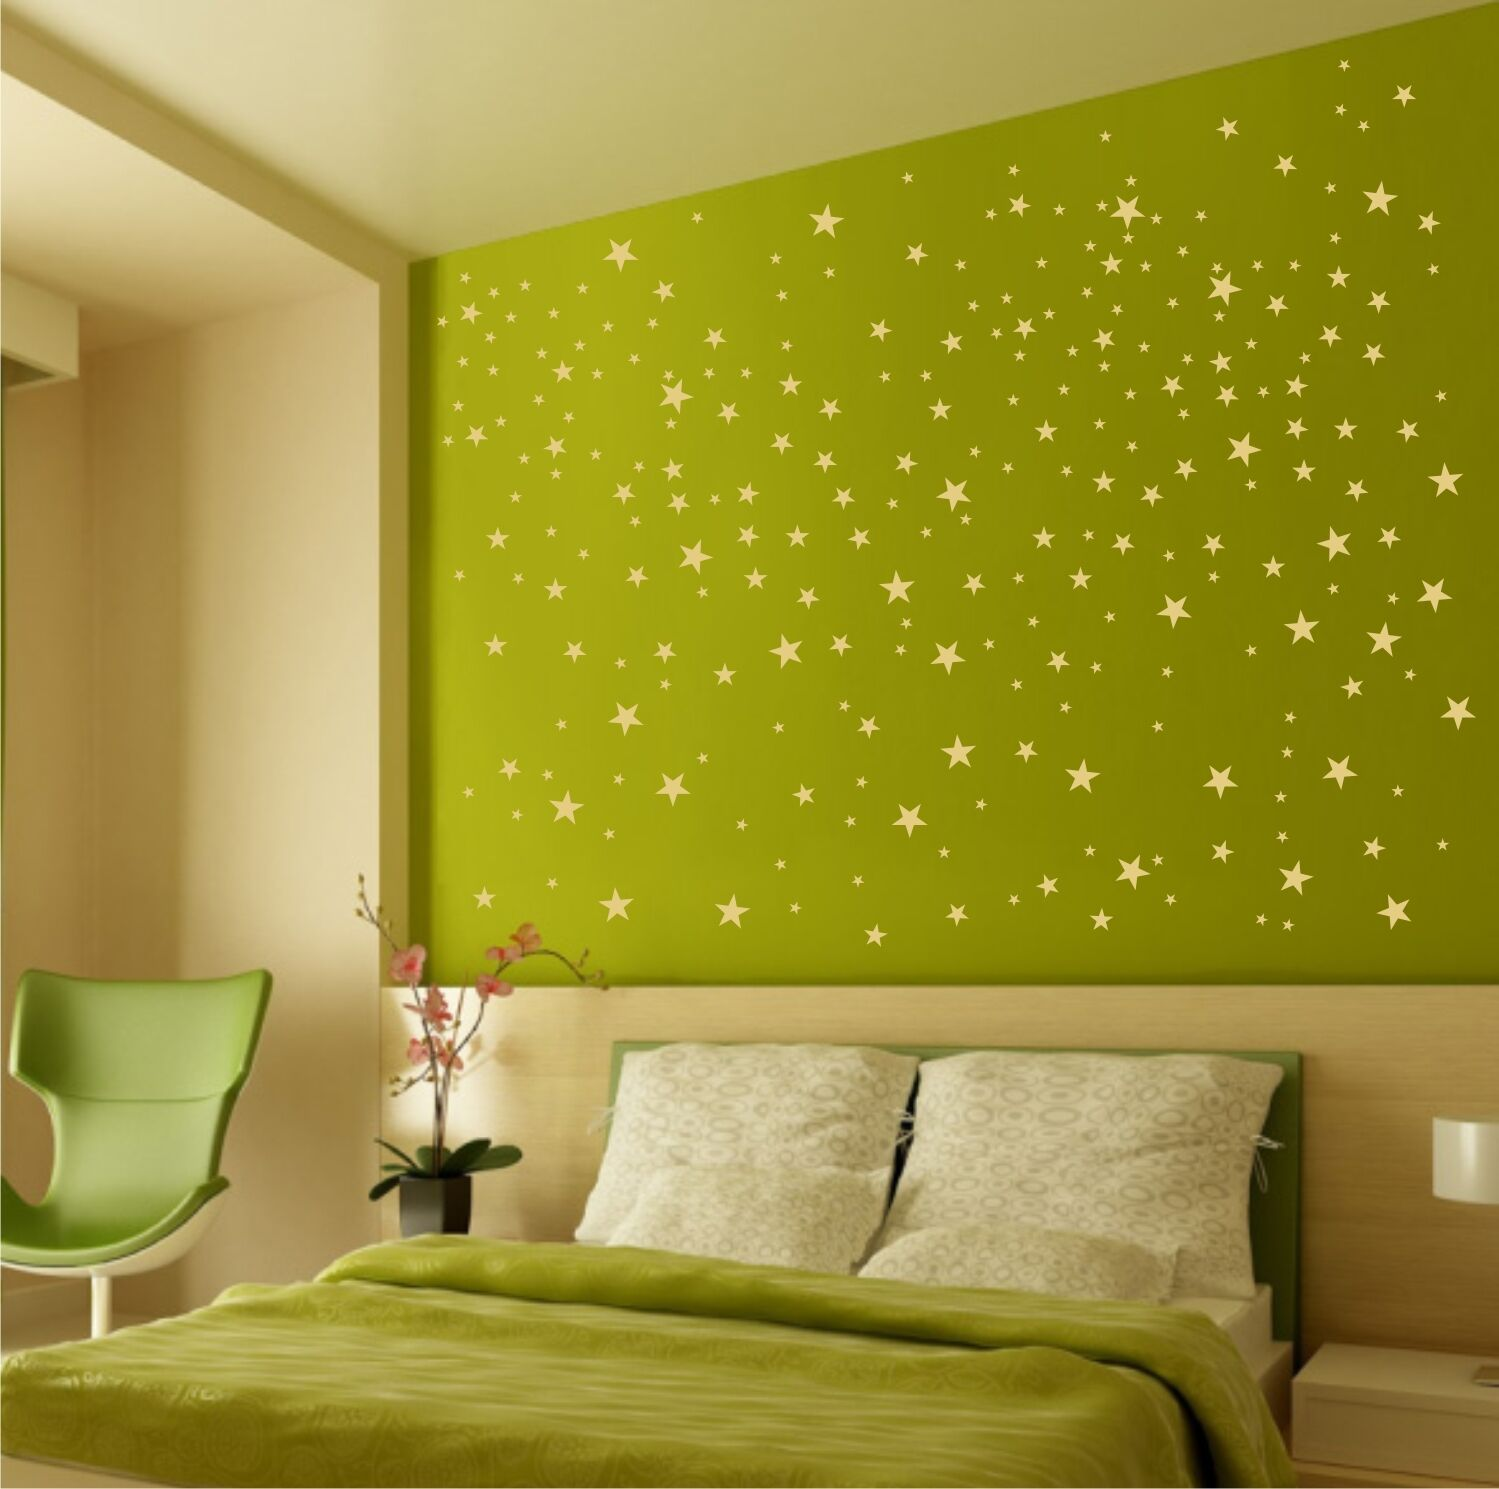 Wall Vinyl / FALLING STARS / Removable Gold Decals / DIY family art ...